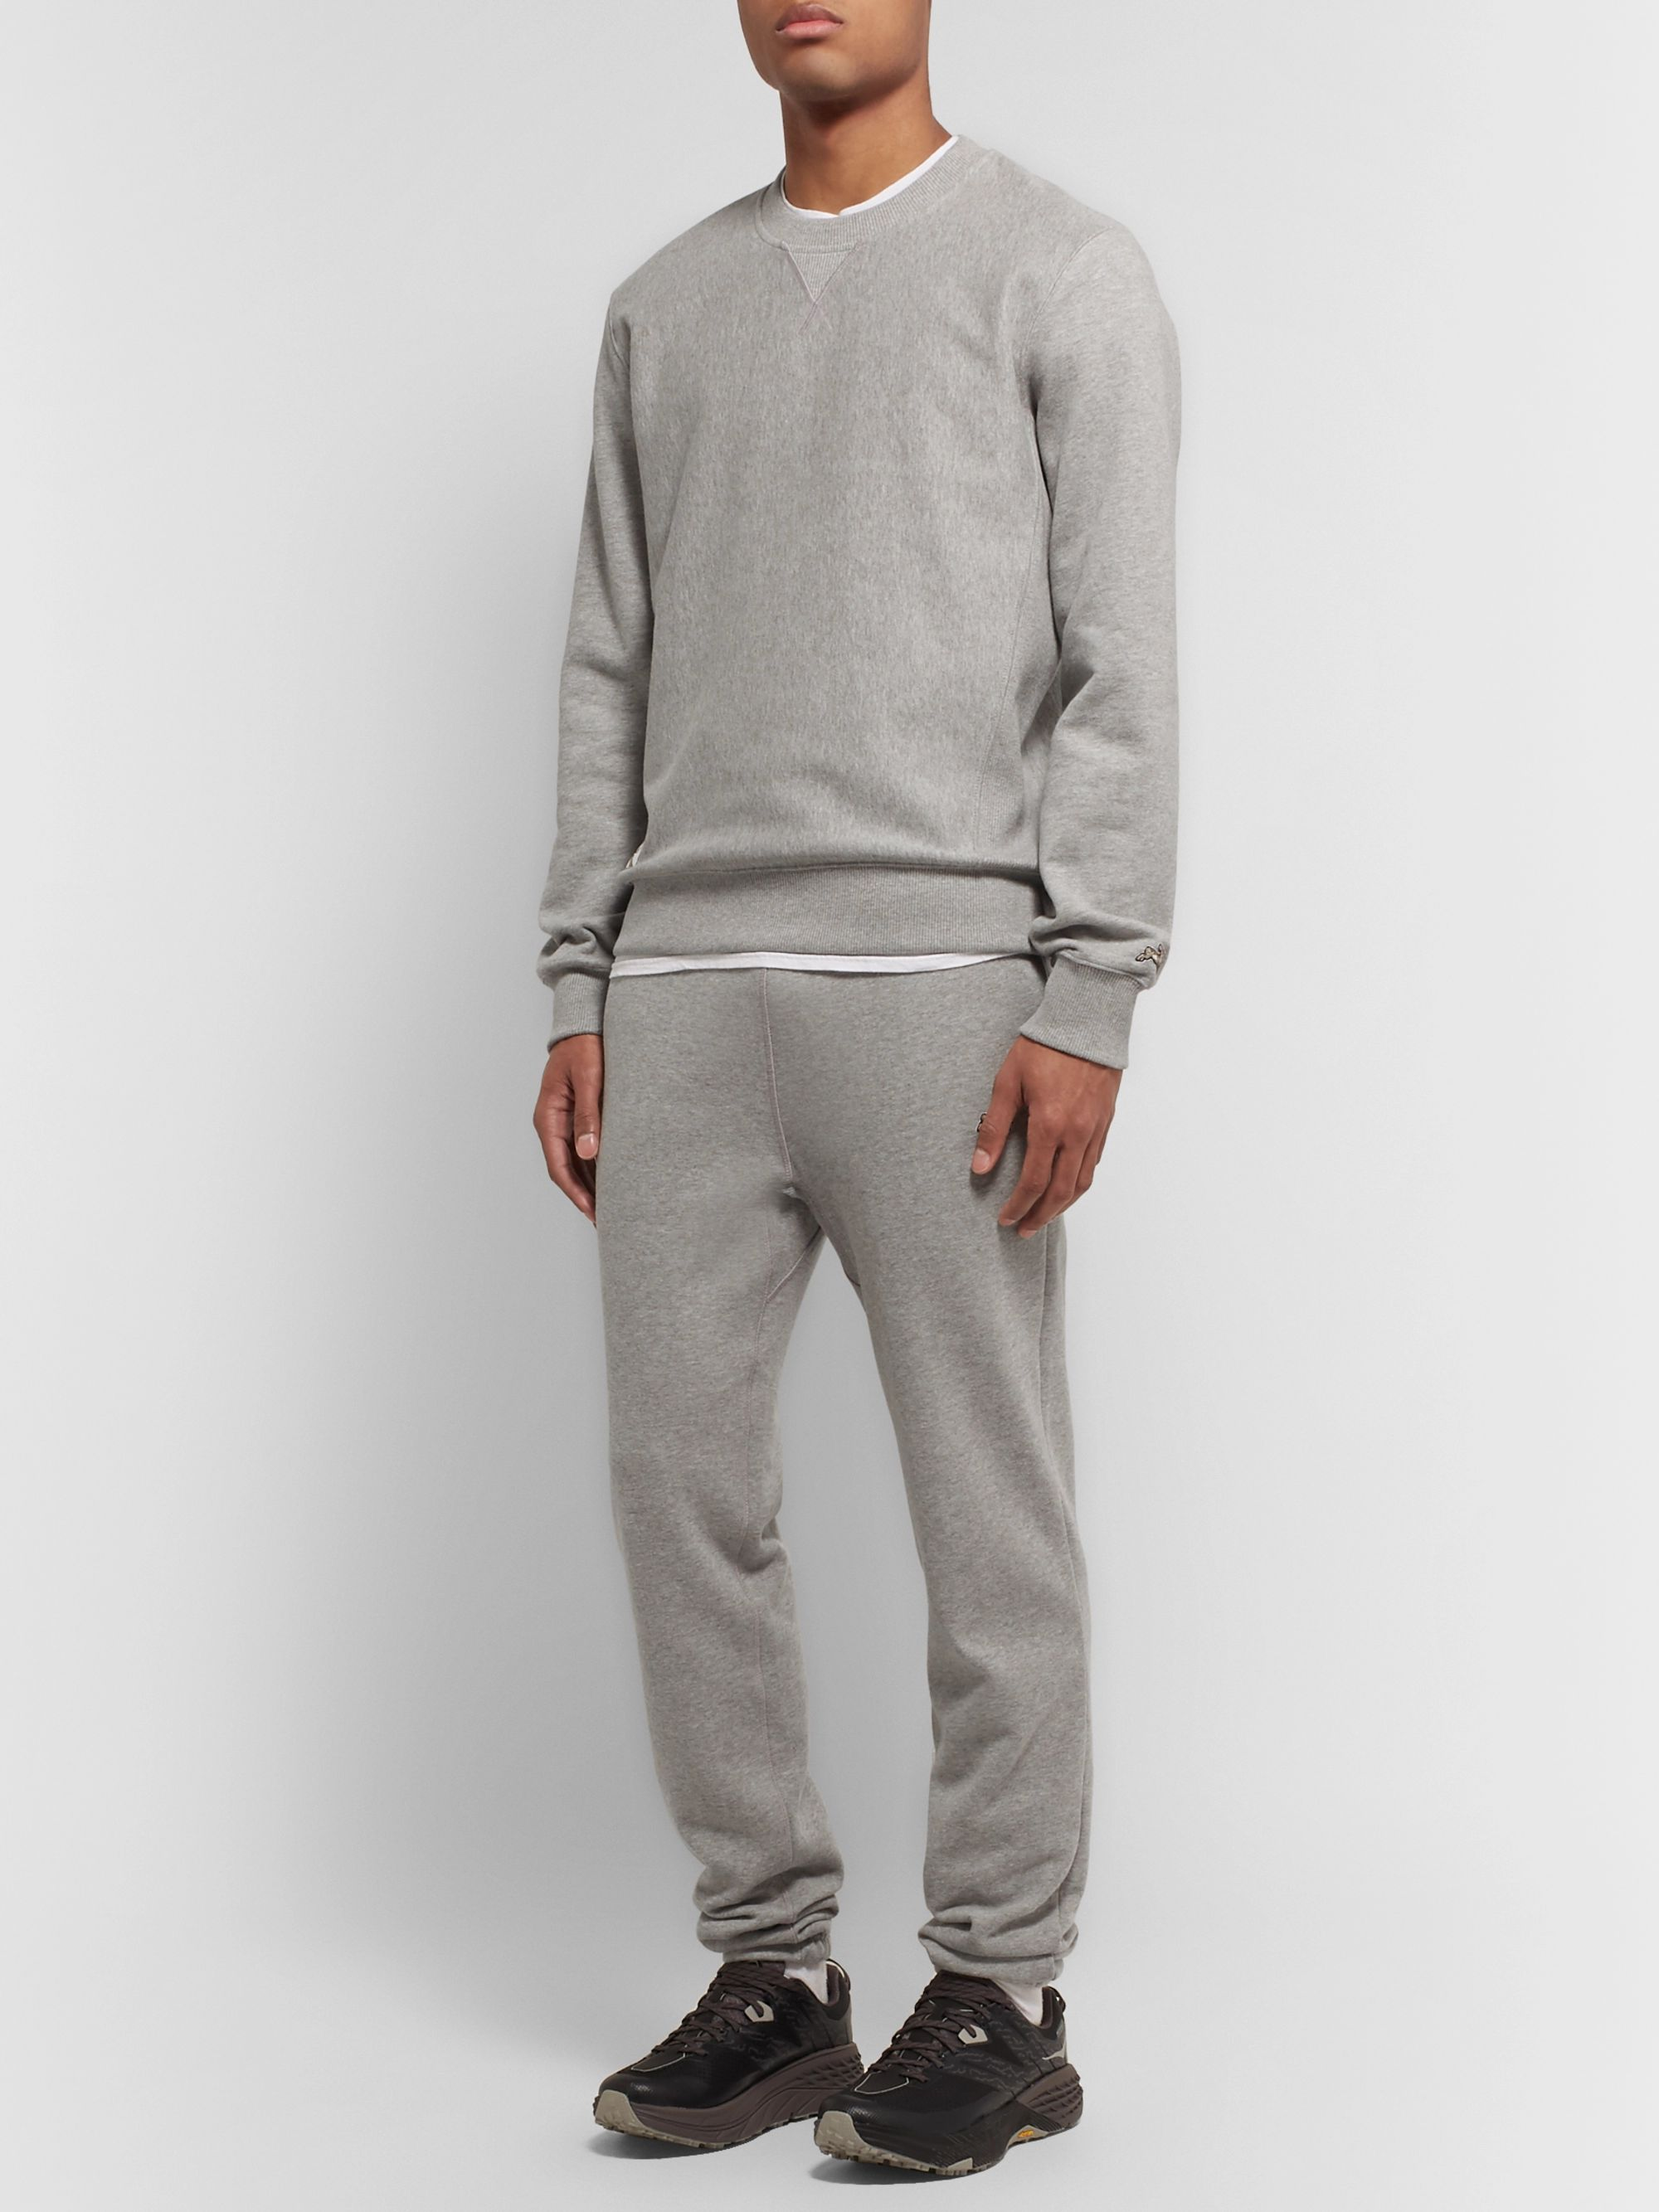 Tracksmith Trackhouse Mélange Fleece-Back Cotton-Blend Jersey Sweatpants